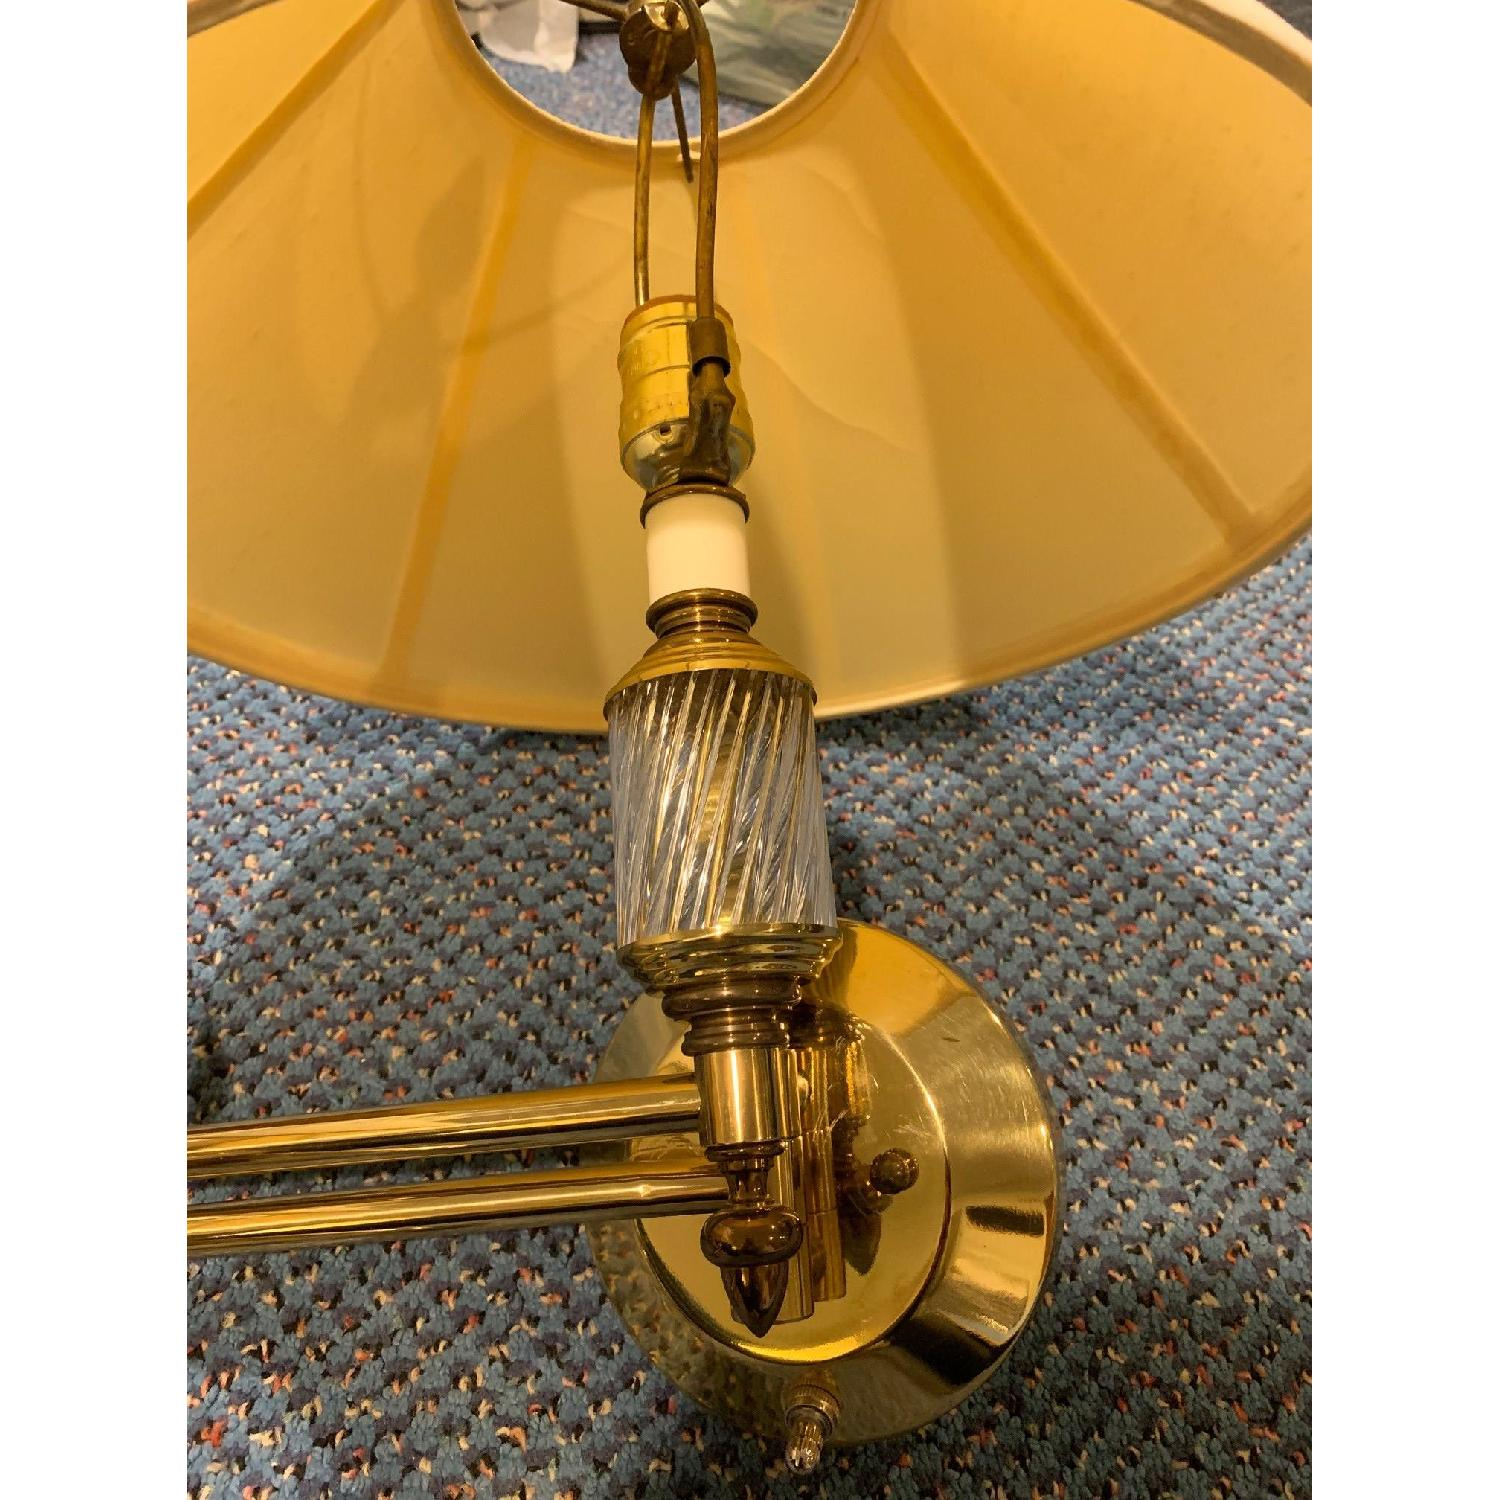 Brass Swing Arm Wall Lamps - image-5